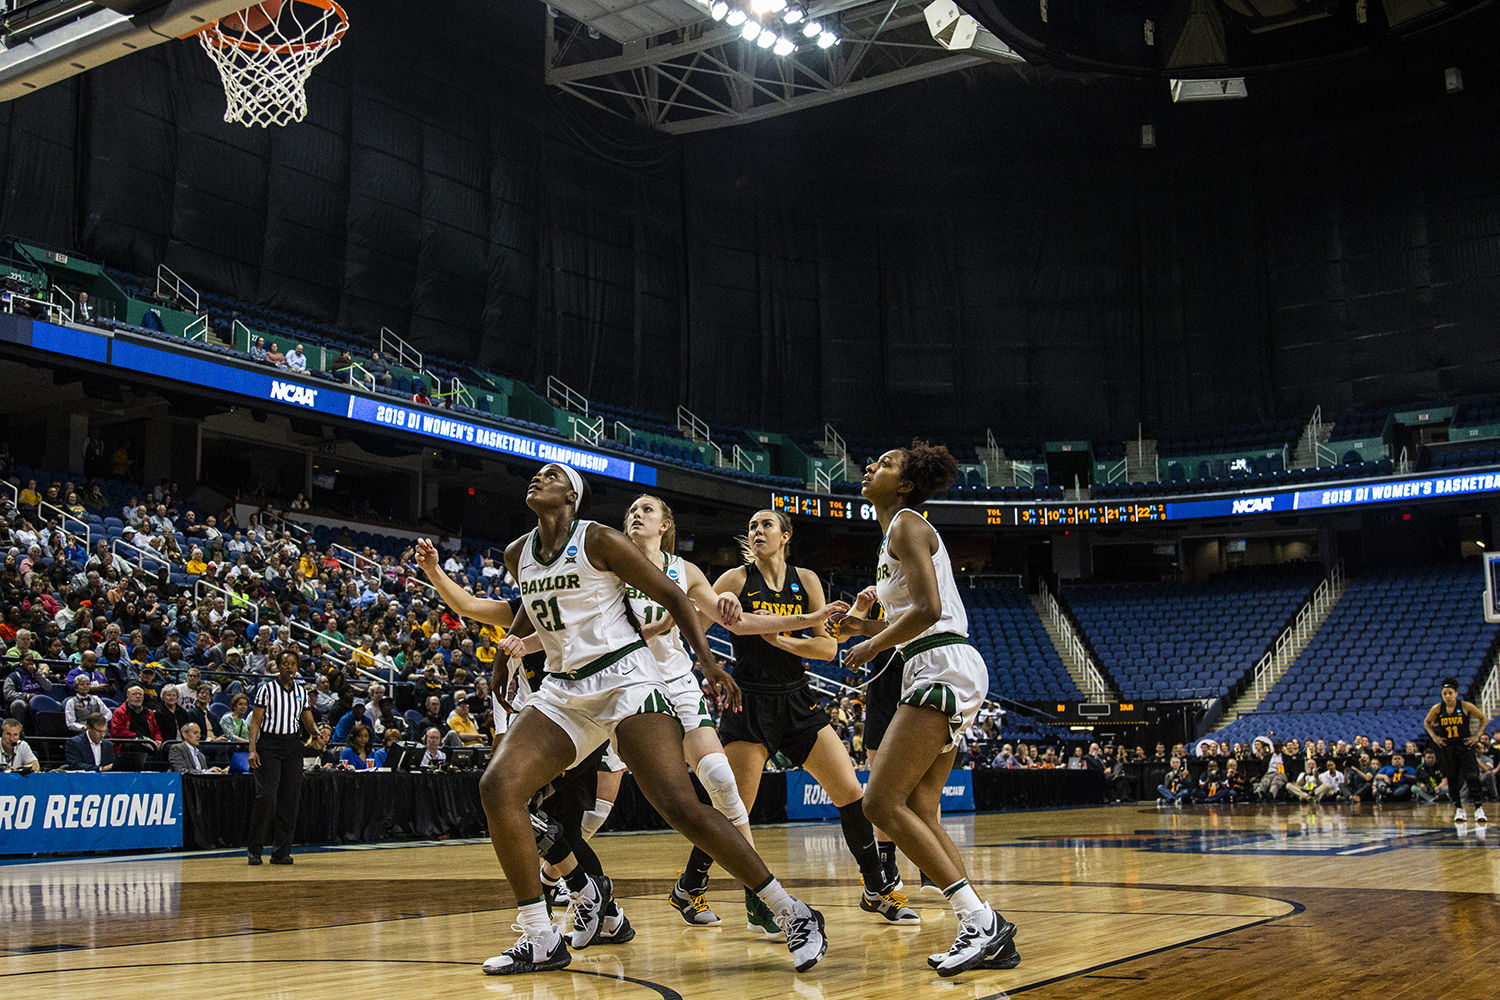 Iowa+and+Baylor+players+prepare+to+rebound+the+ball+after+a+free-throw+during+the+NCAA+Elite+8+game+against+Baylor+at+the+Greensboro+Coliseum+Complex+on+Monday%2C+April+1%2C+2019.+The+Bears+defeated+the+Hawkeyes+85-53.